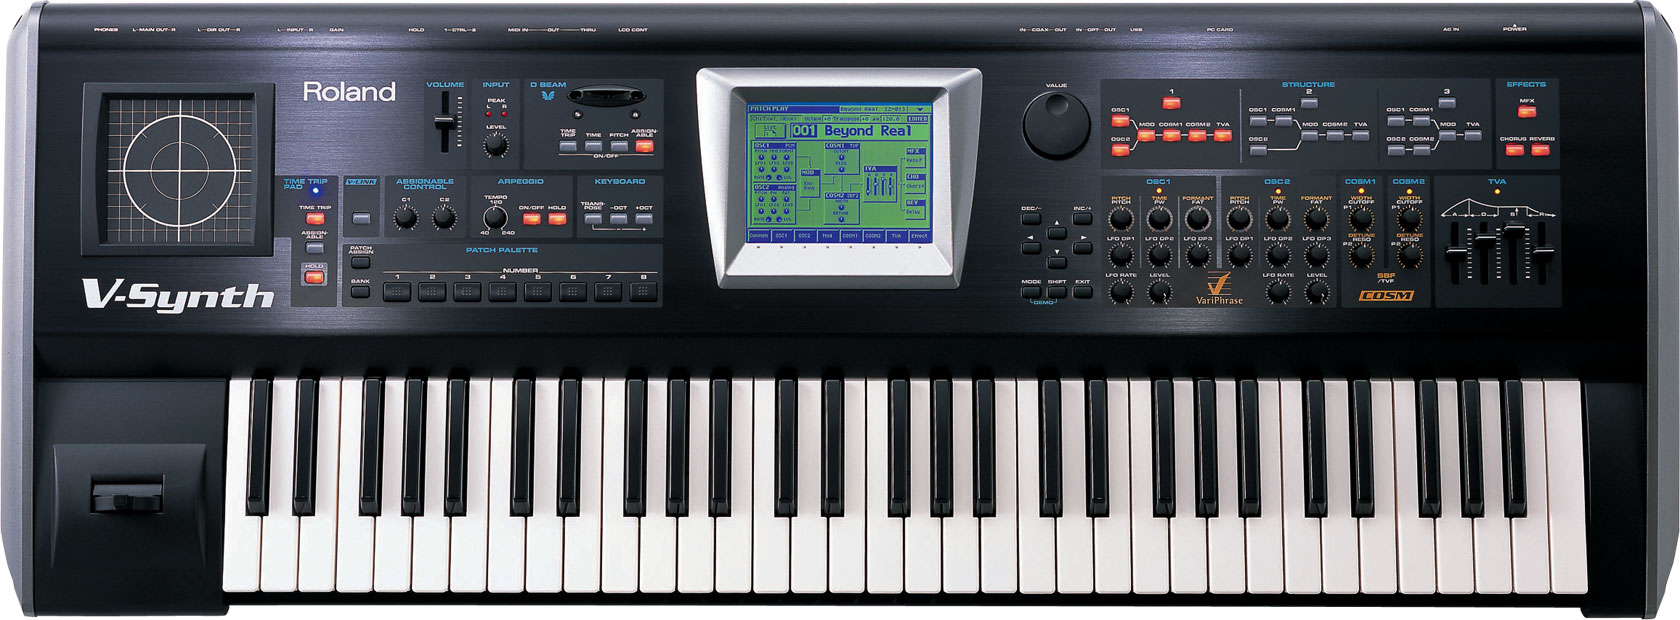 classic roland synths roland u s blog. Black Bedroom Furniture Sets. Home Design Ideas